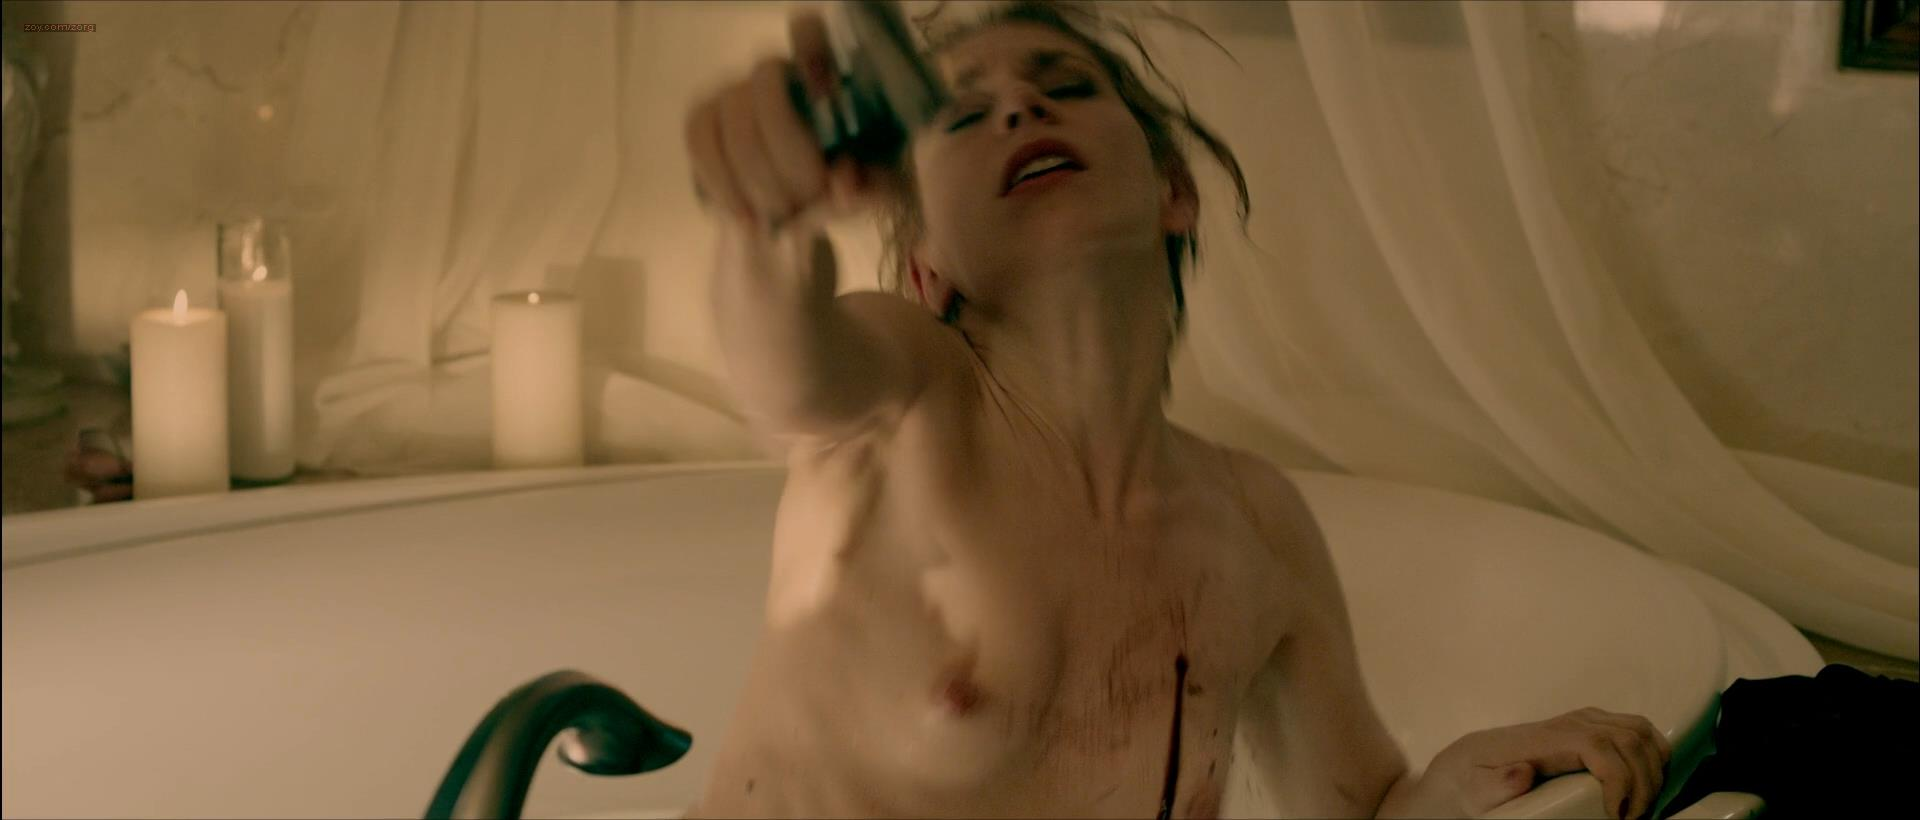 Julia Dietze nude brief topless in the bath – Bullet (2014) hd1080p